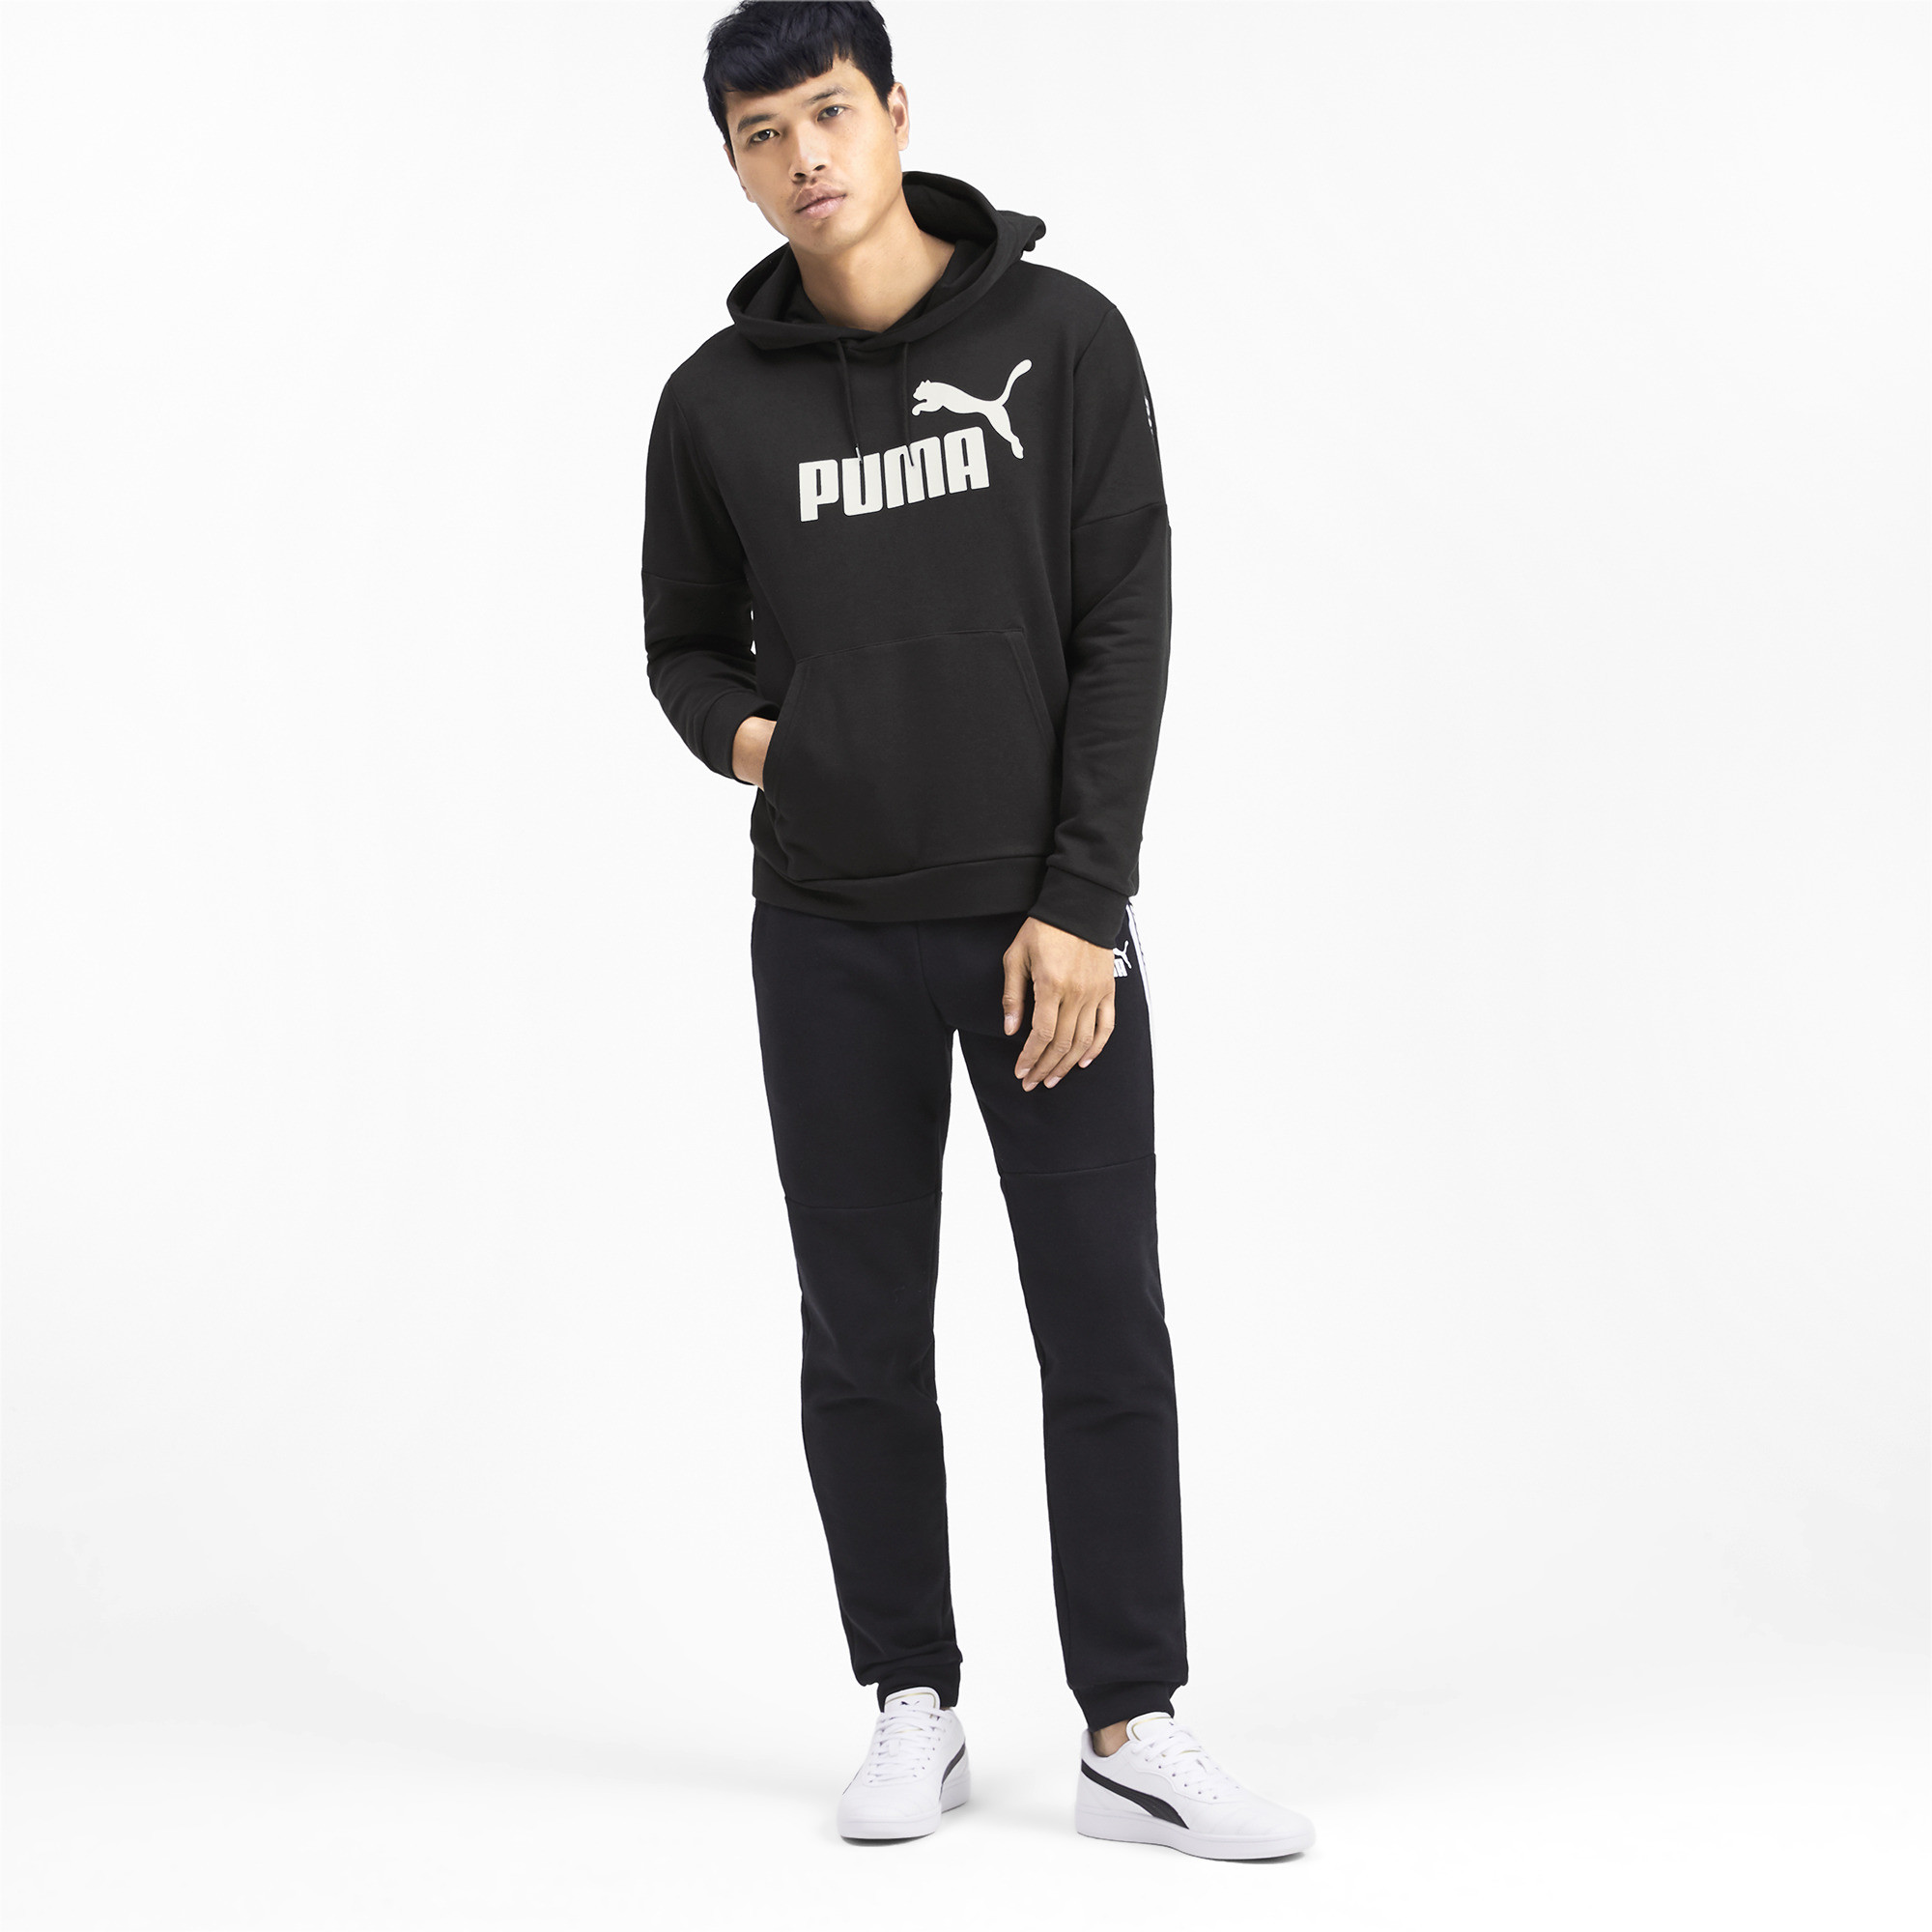 PUMA-Amplified-Men-039-s-Hoodie-Men-Sweat-Basics thumbnail 11